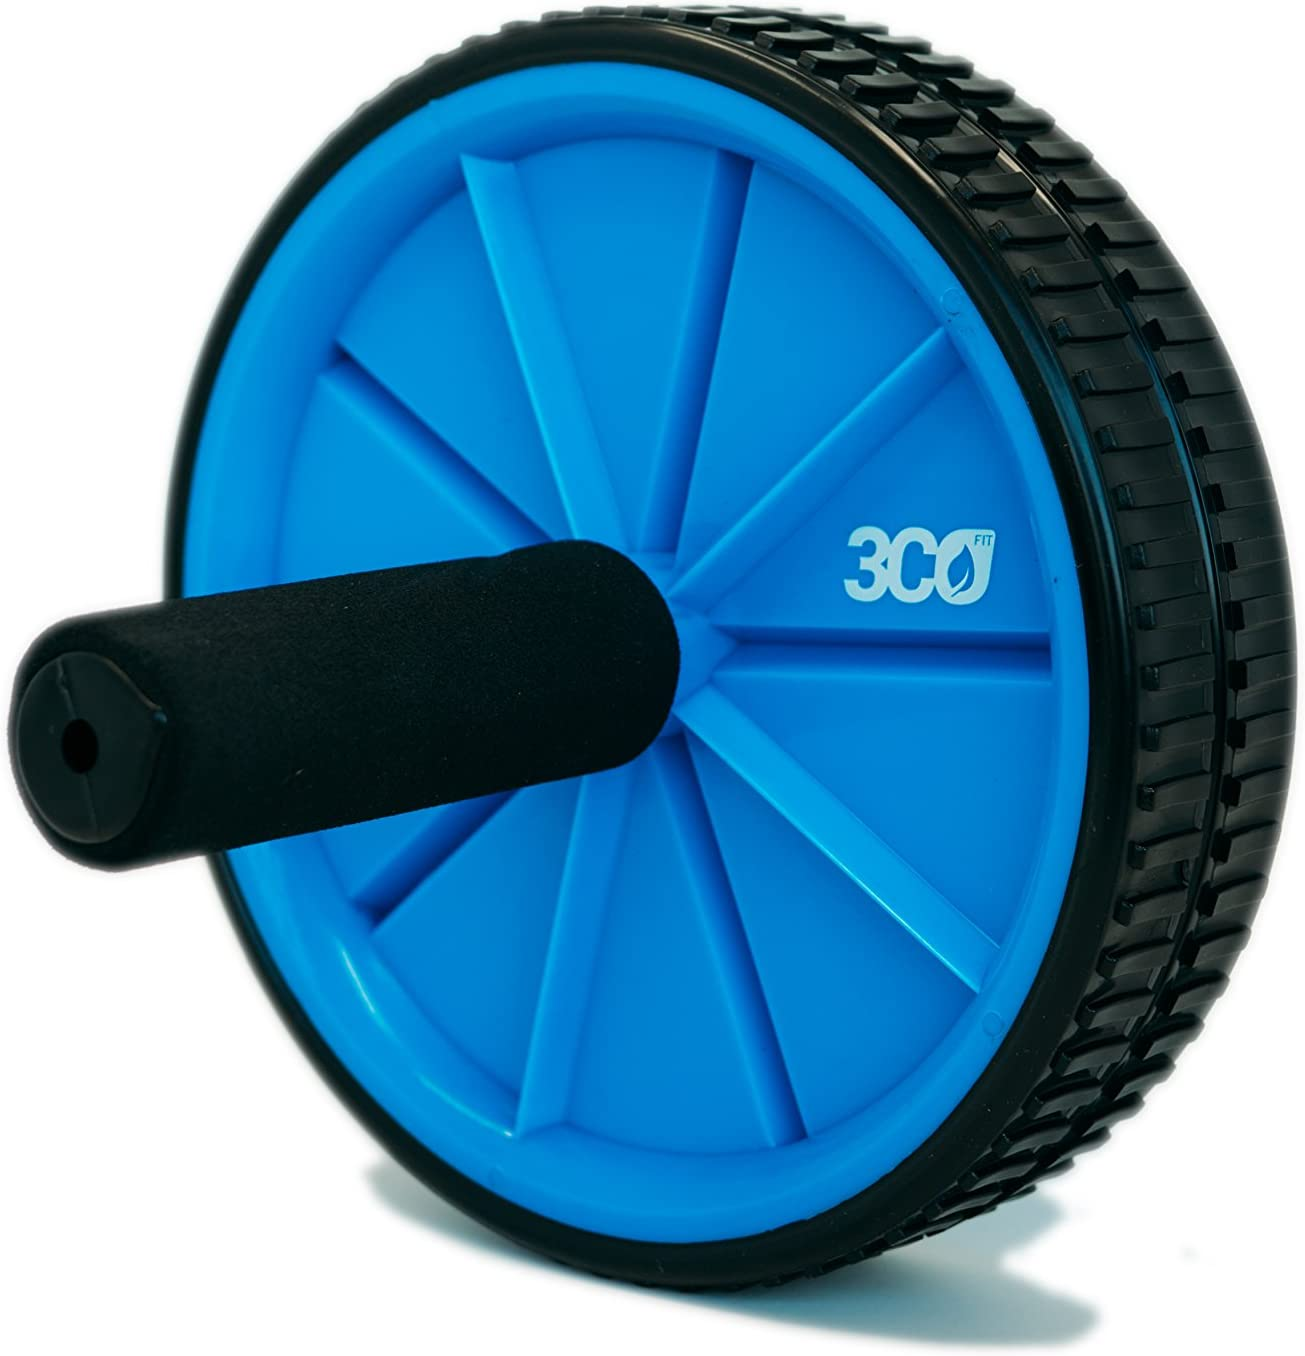 Abdominal /& Stomach Training Portable and Lightweight 3COFIT Ab Roller Wheel in Blue Color for Core Strength Perfect for Fitness Exercises